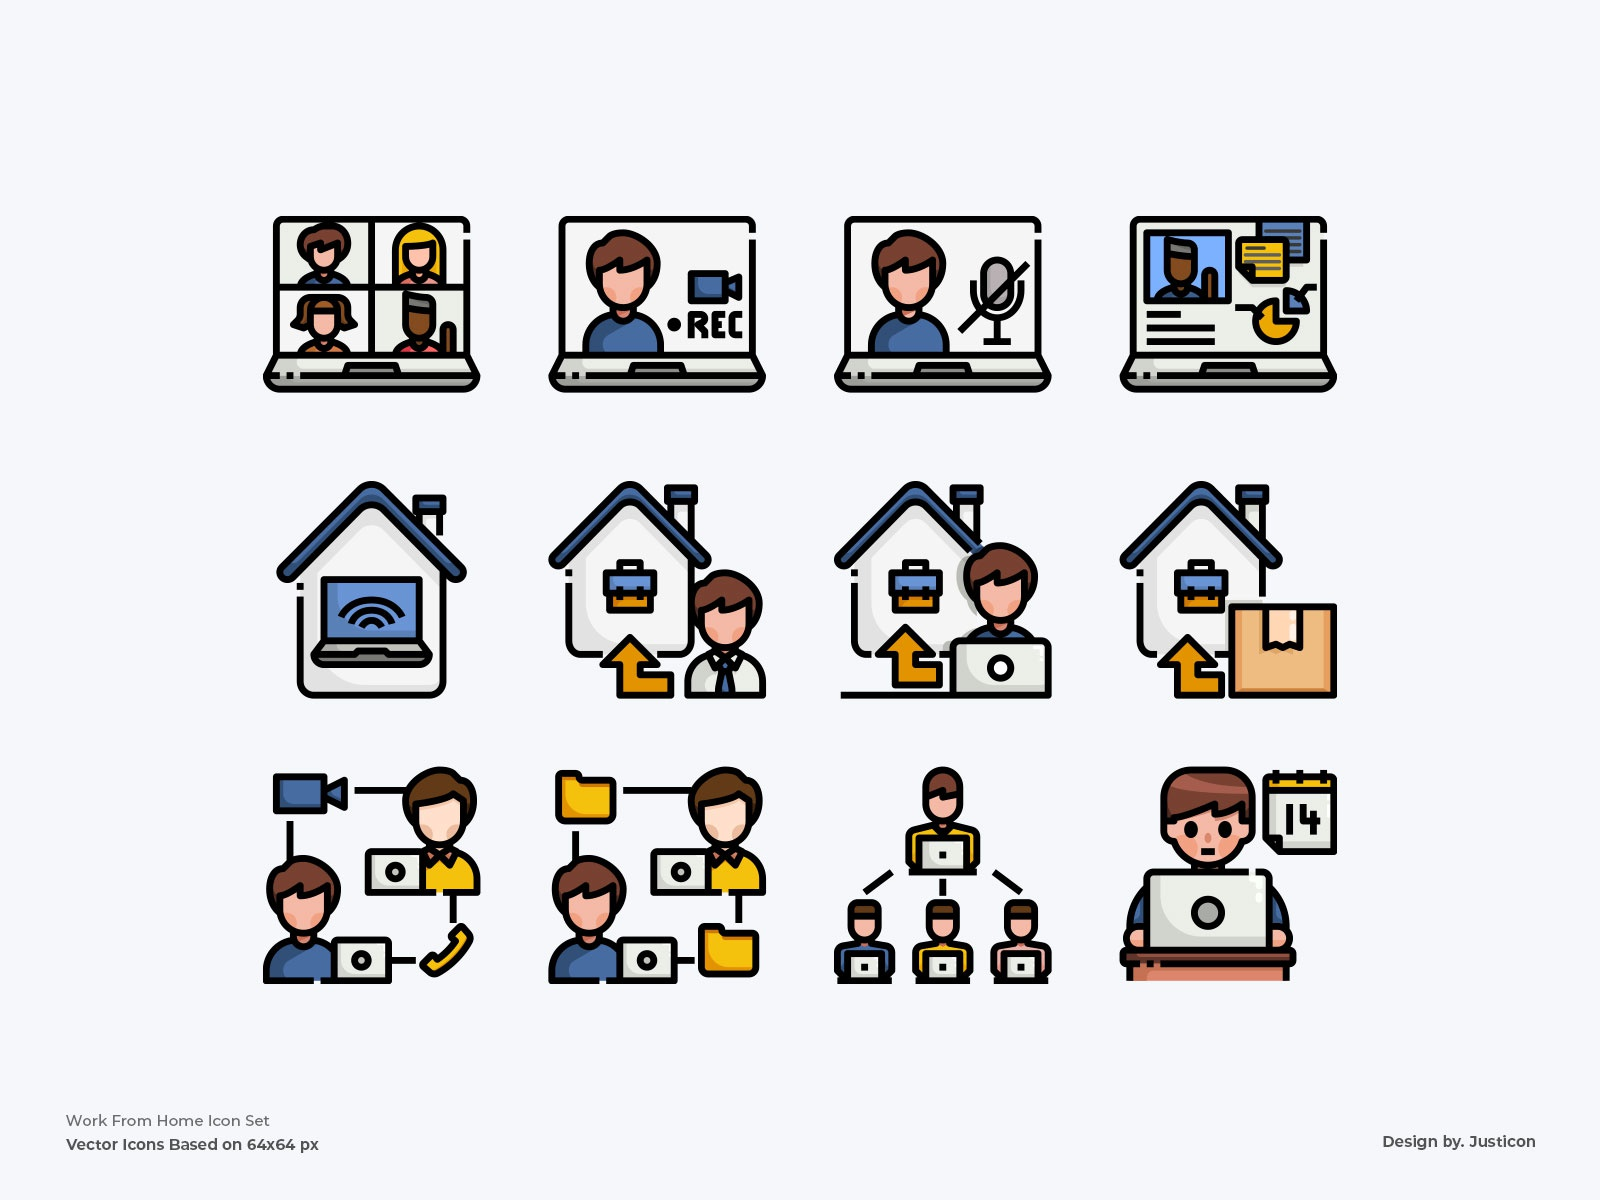 Work From Home Icon Set by Justicon on Dribbble